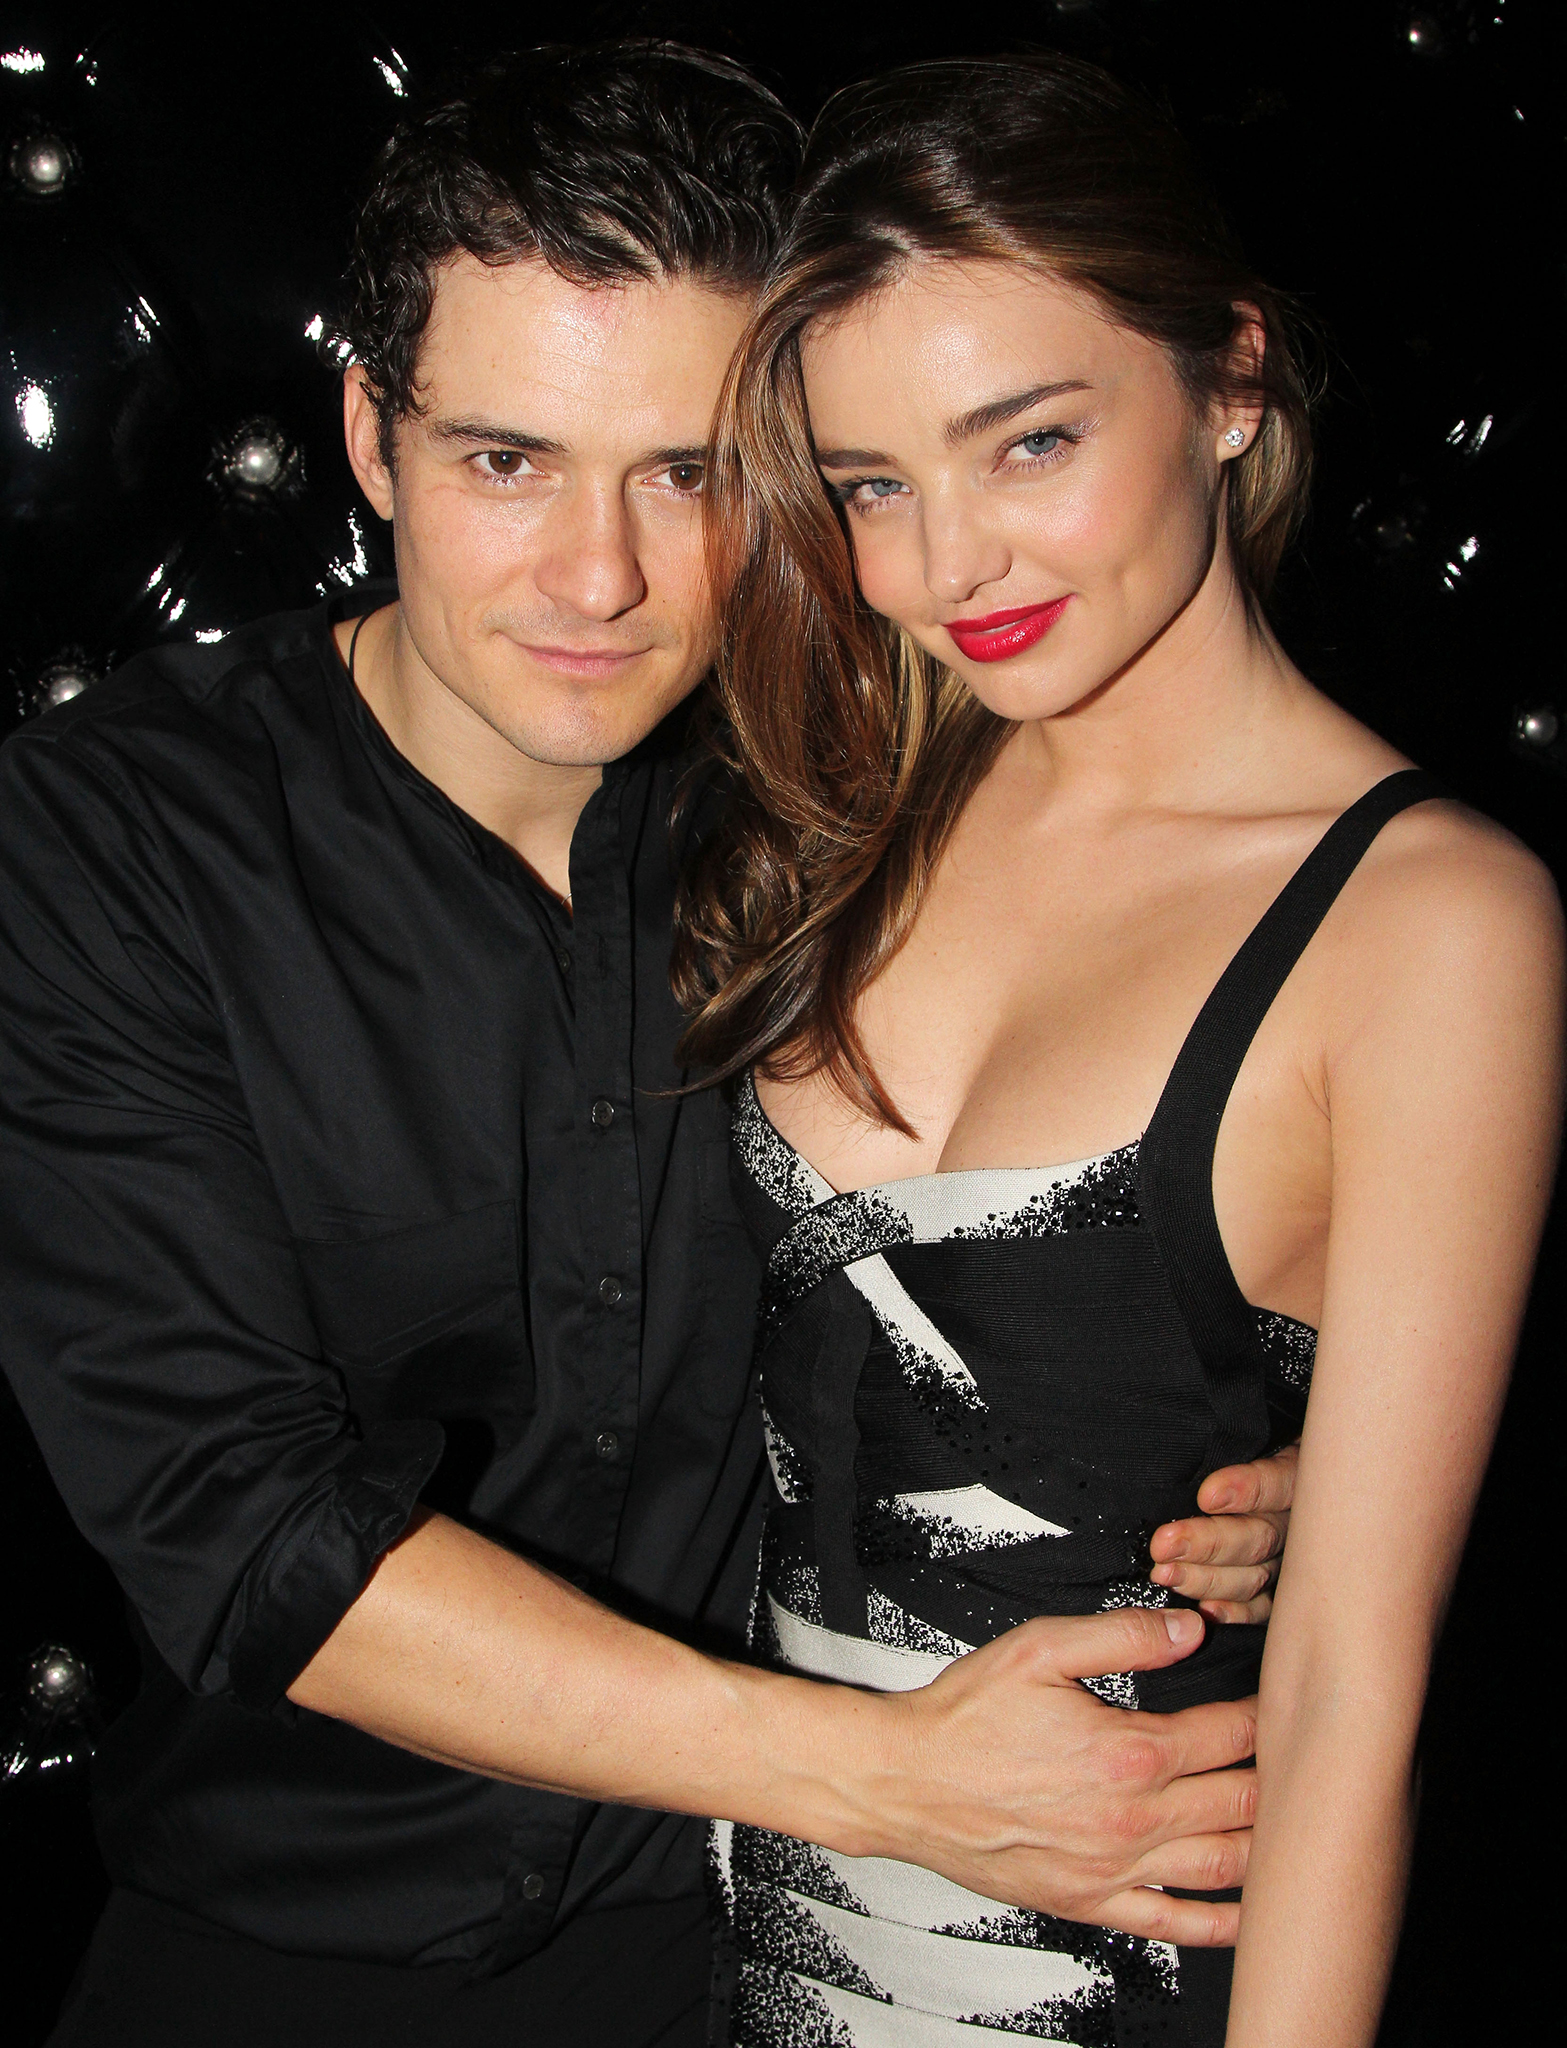 Orlando Bloom and Miranda Kerr on September 19. (Getty Images)